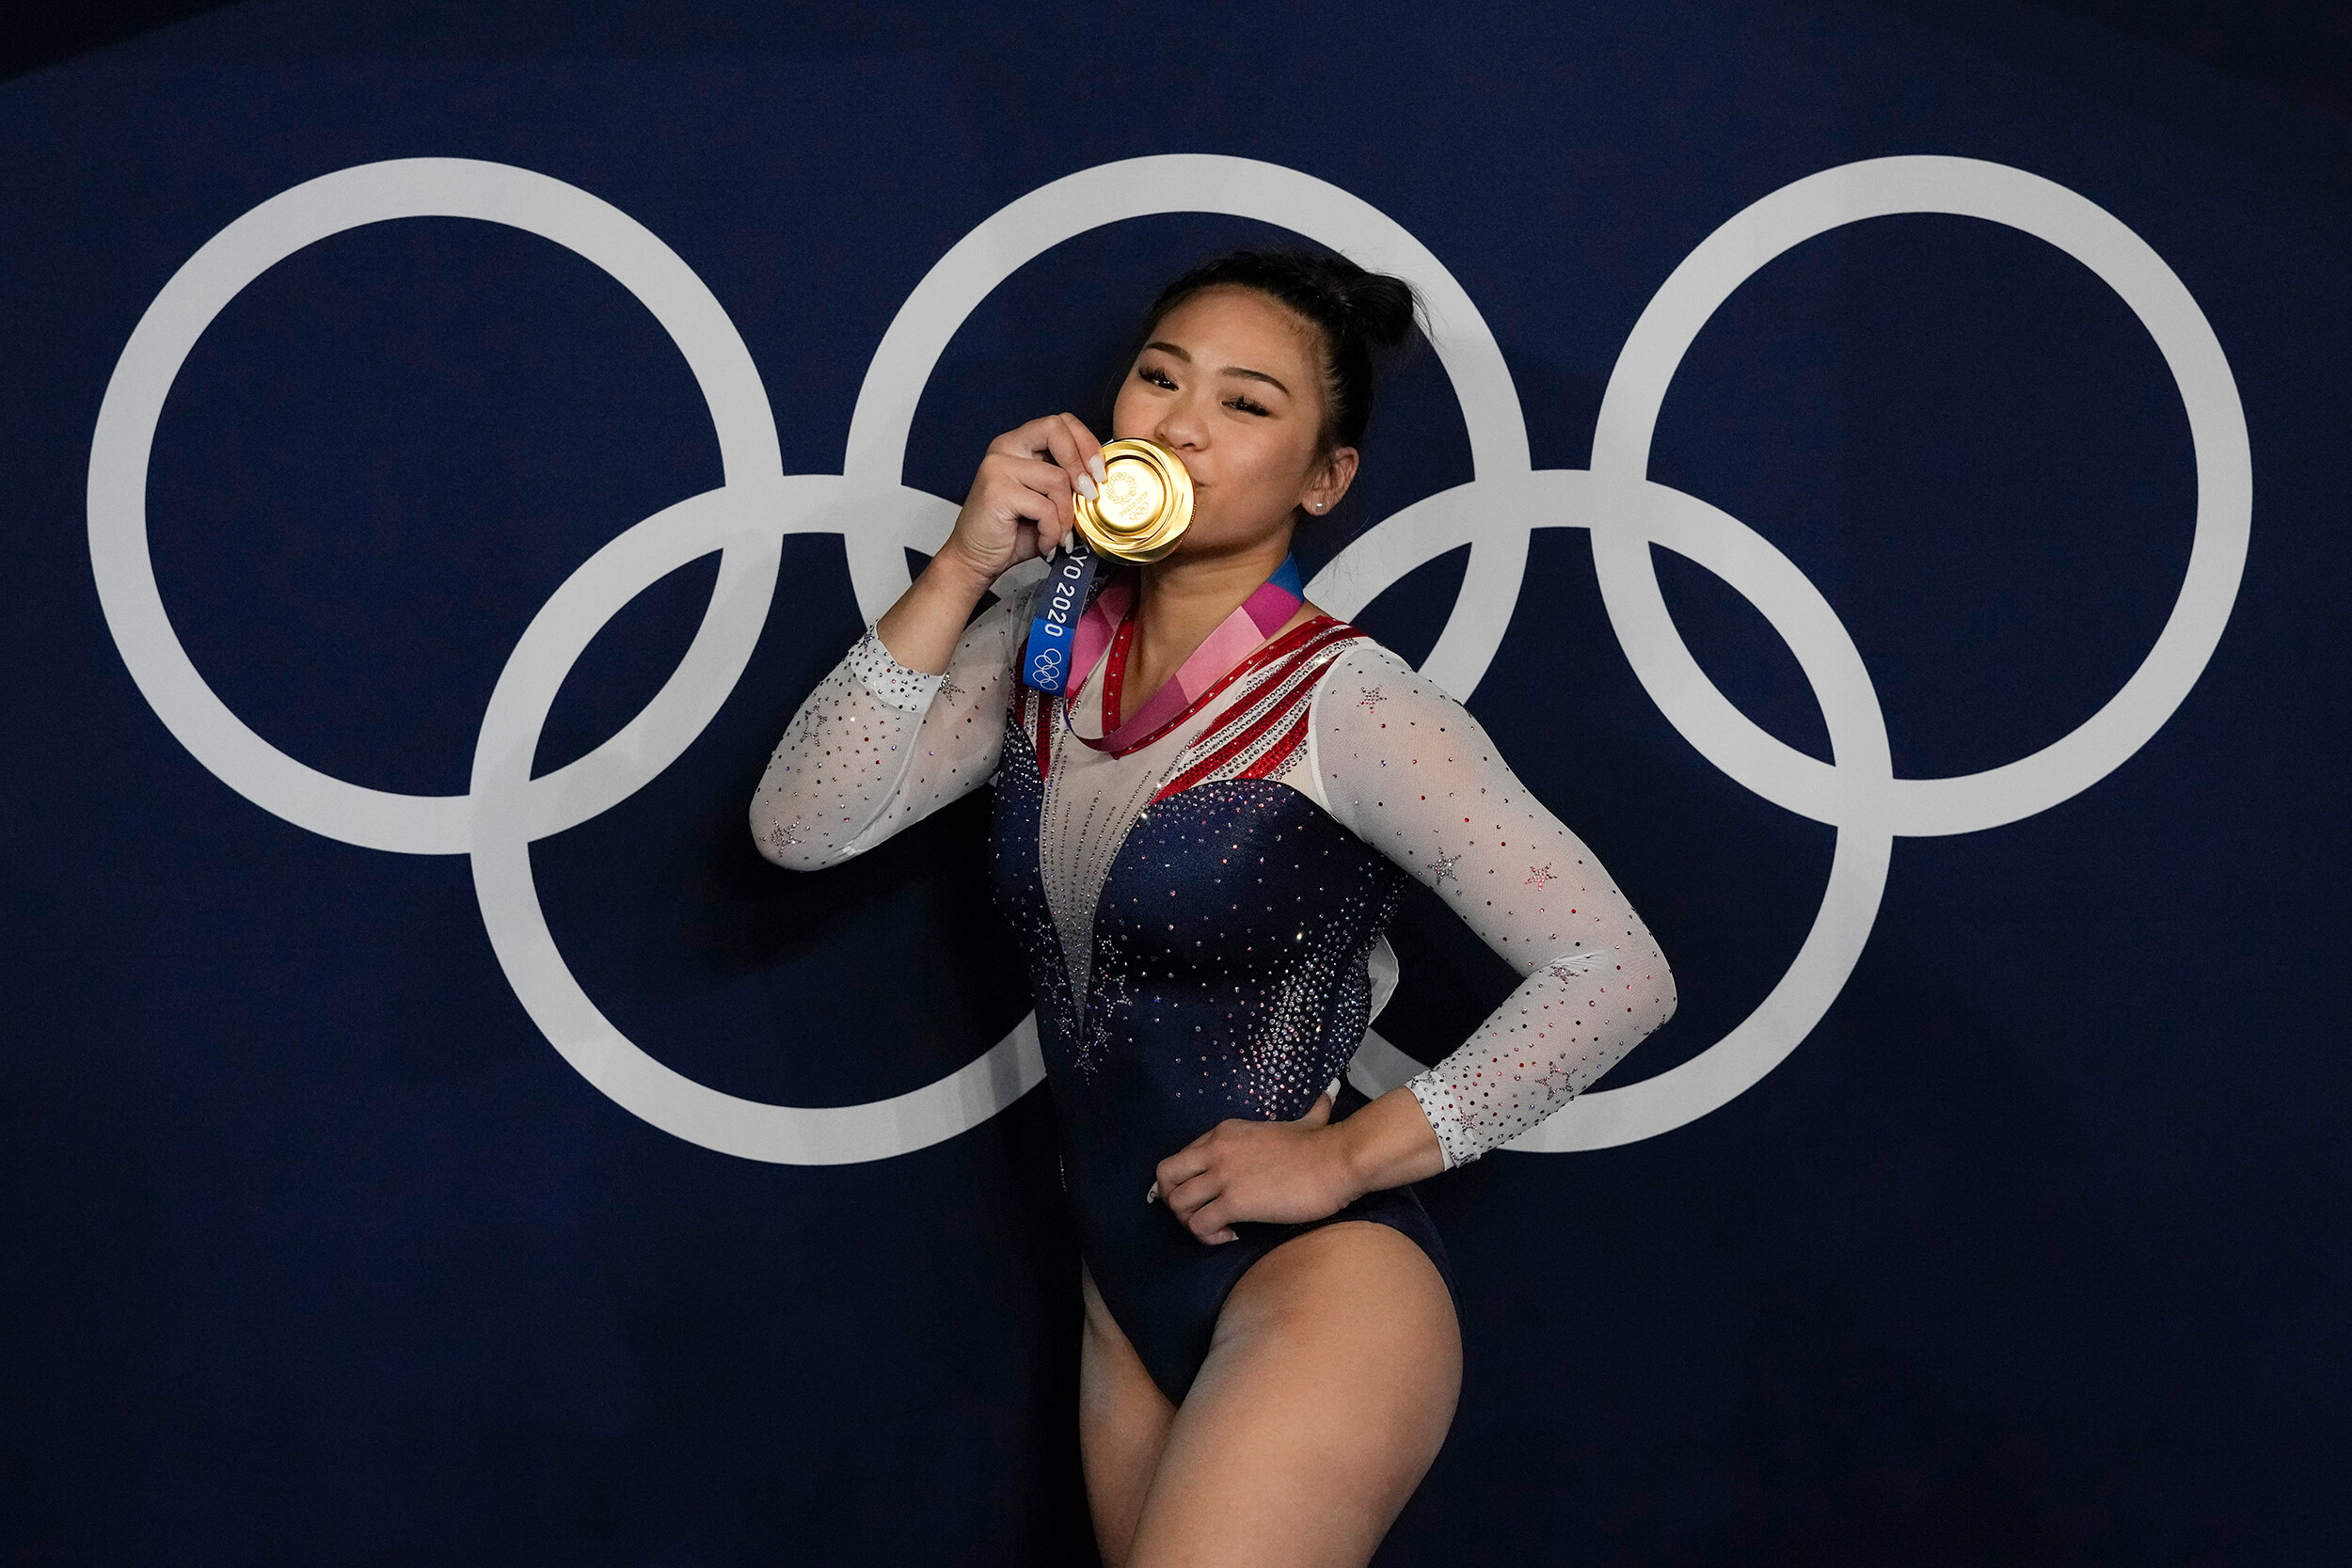 <i>Gregory Bull/AP</i><br/>Suni Lee reacts as she poses for a picture after winning the gold medal in the artistic gymnastics women's all-around final on July 29 in Tokyo